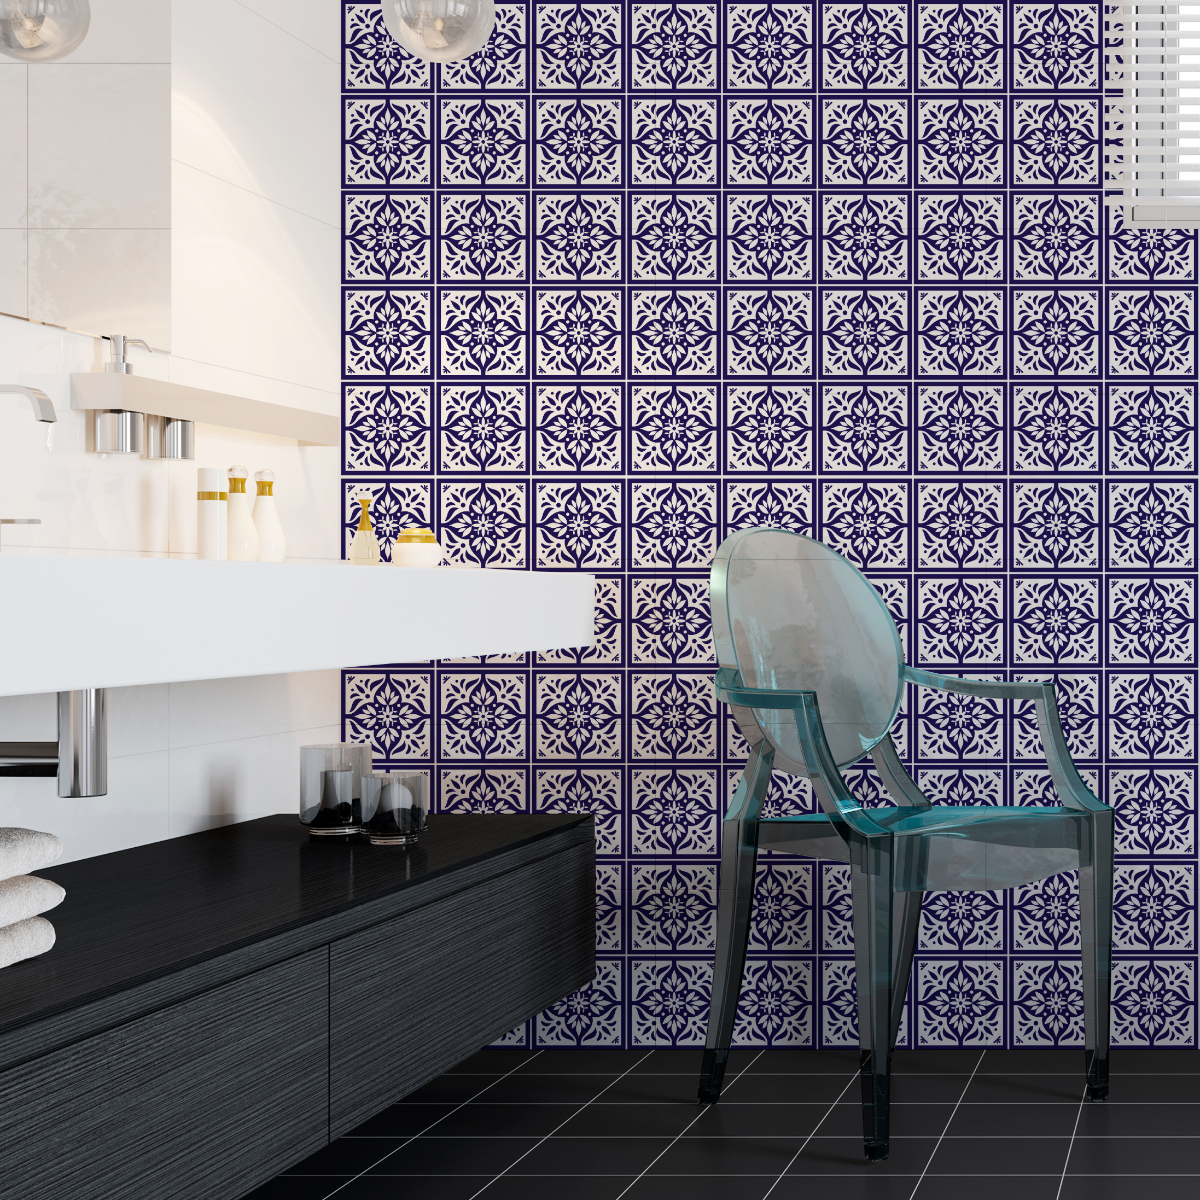 60 stickers carreaux de ciment azulejos lorenzo salle de bain et wc salle de bain ambiance. Black Bedroom Furniture Sets. Home Design Ideas